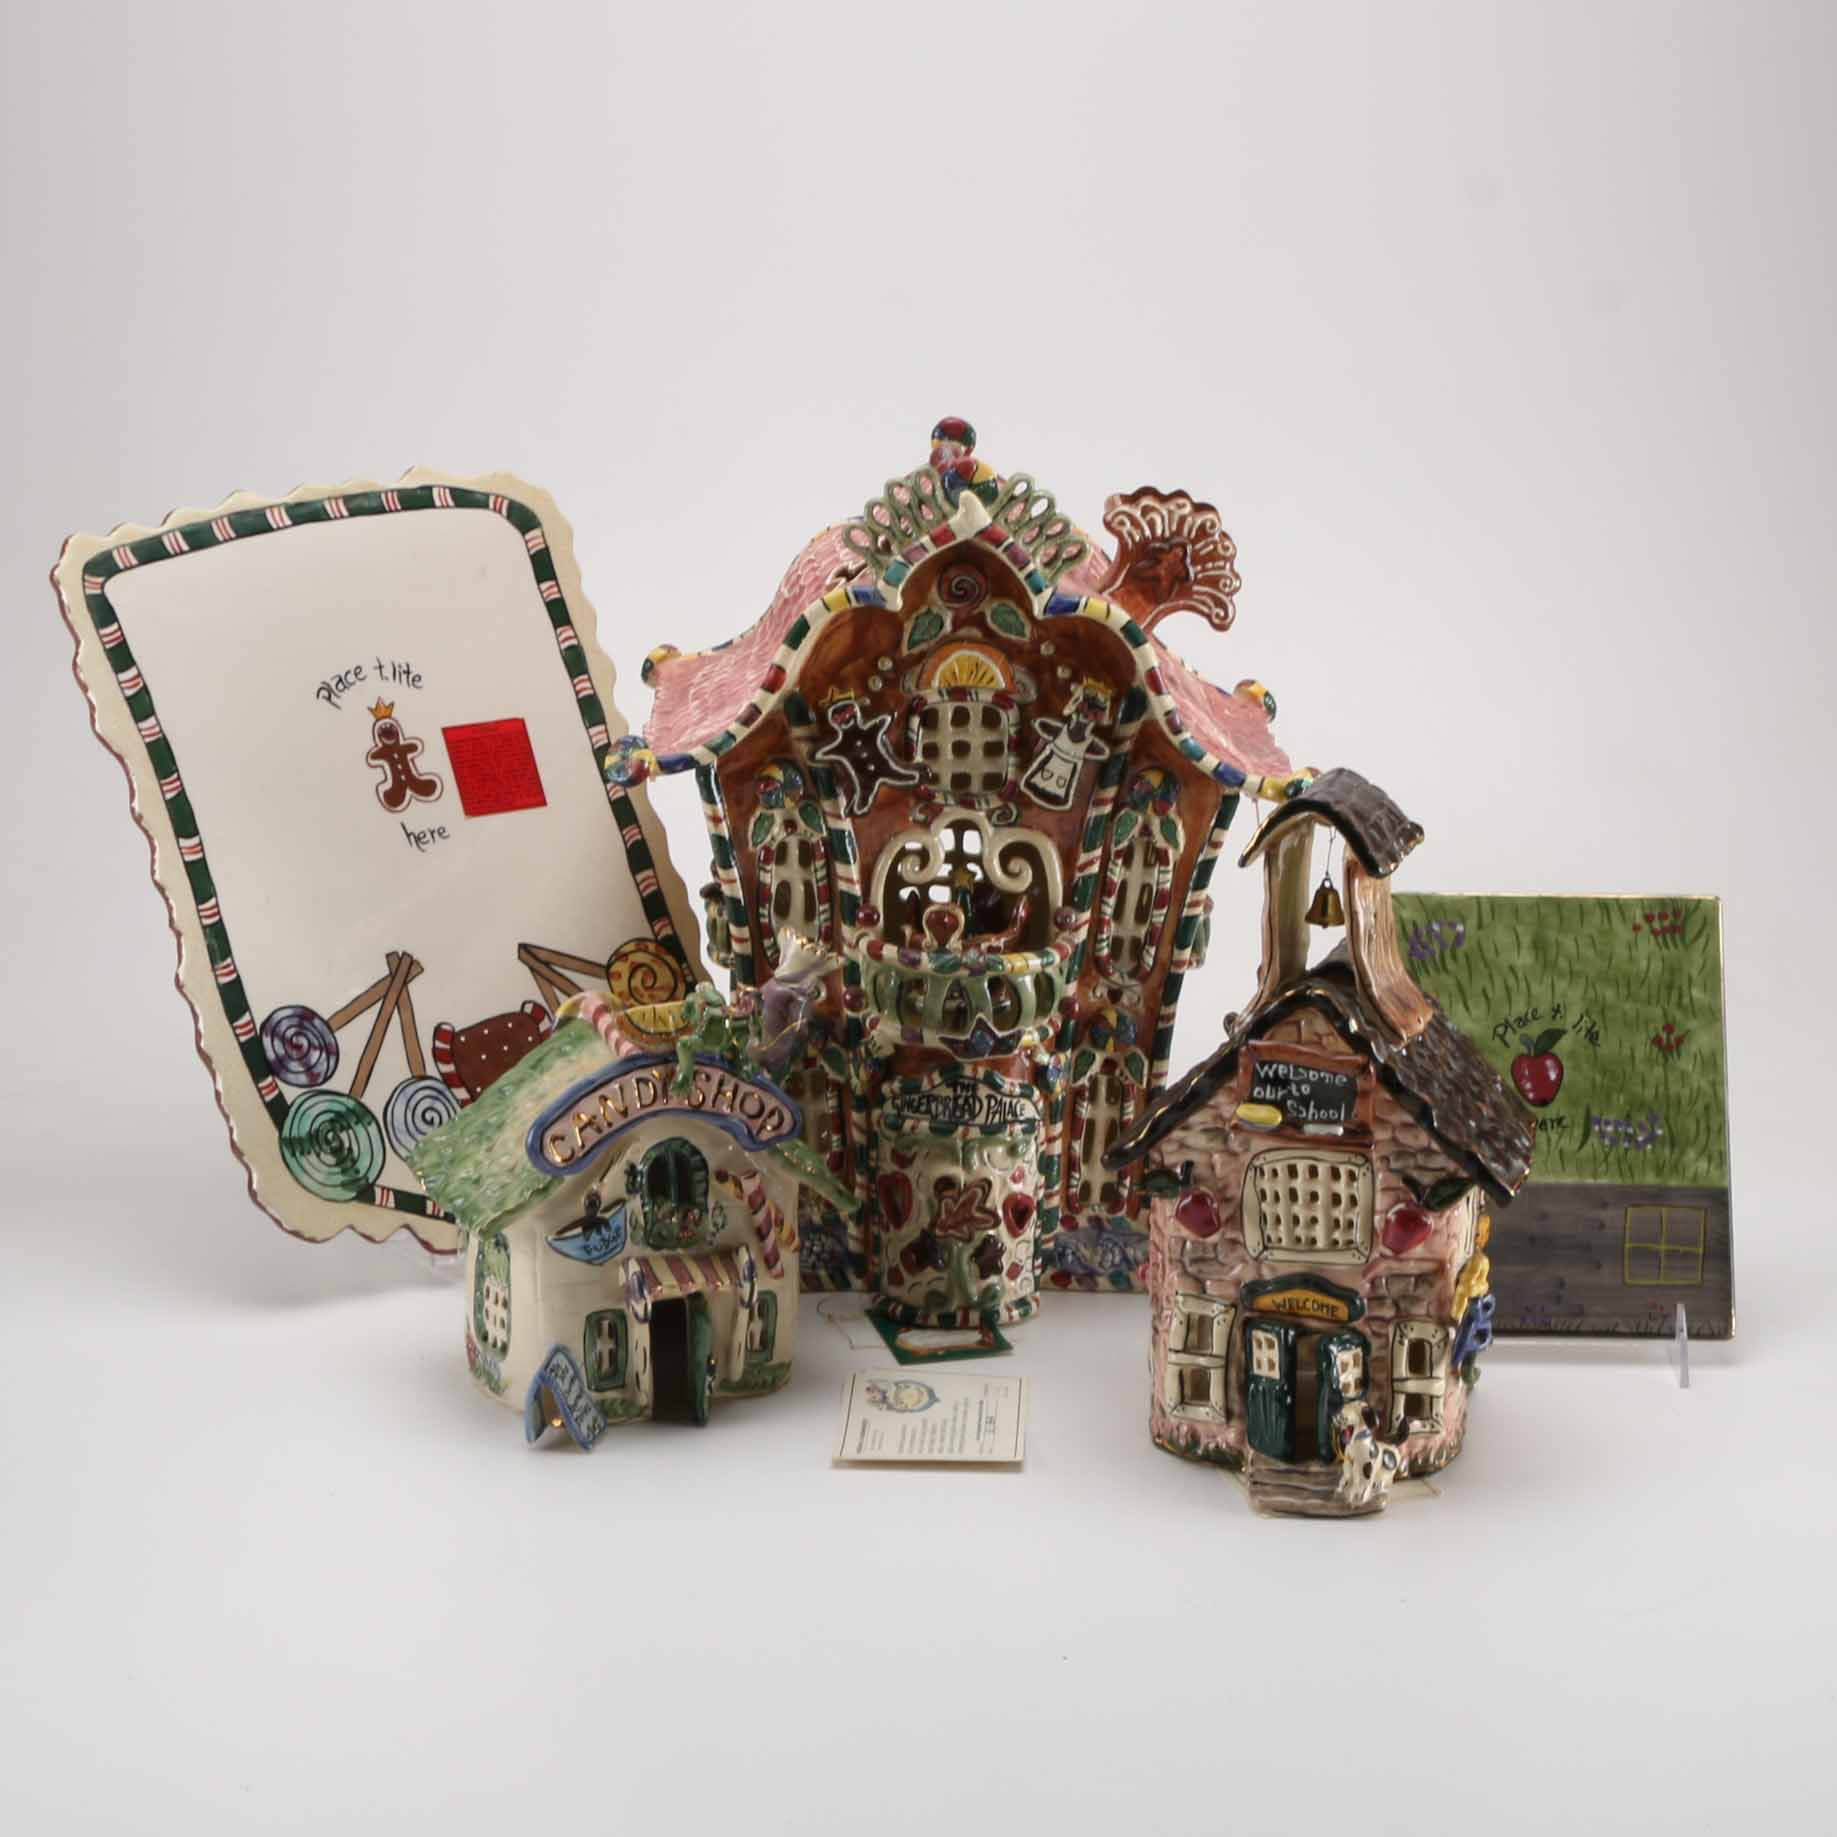 Handcrafted Clayworks Houses by Heather Goldminc